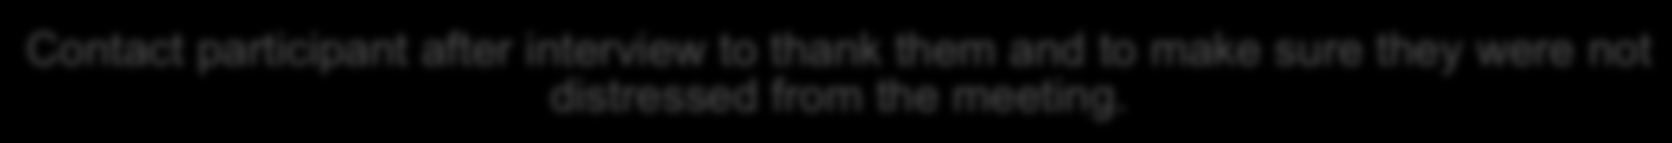 To ensure inclusion, our aim was to recruit as wide-ranging a sample as possible, including participants of both genders, with different types of impairment and ethnic backgrounds, from across the